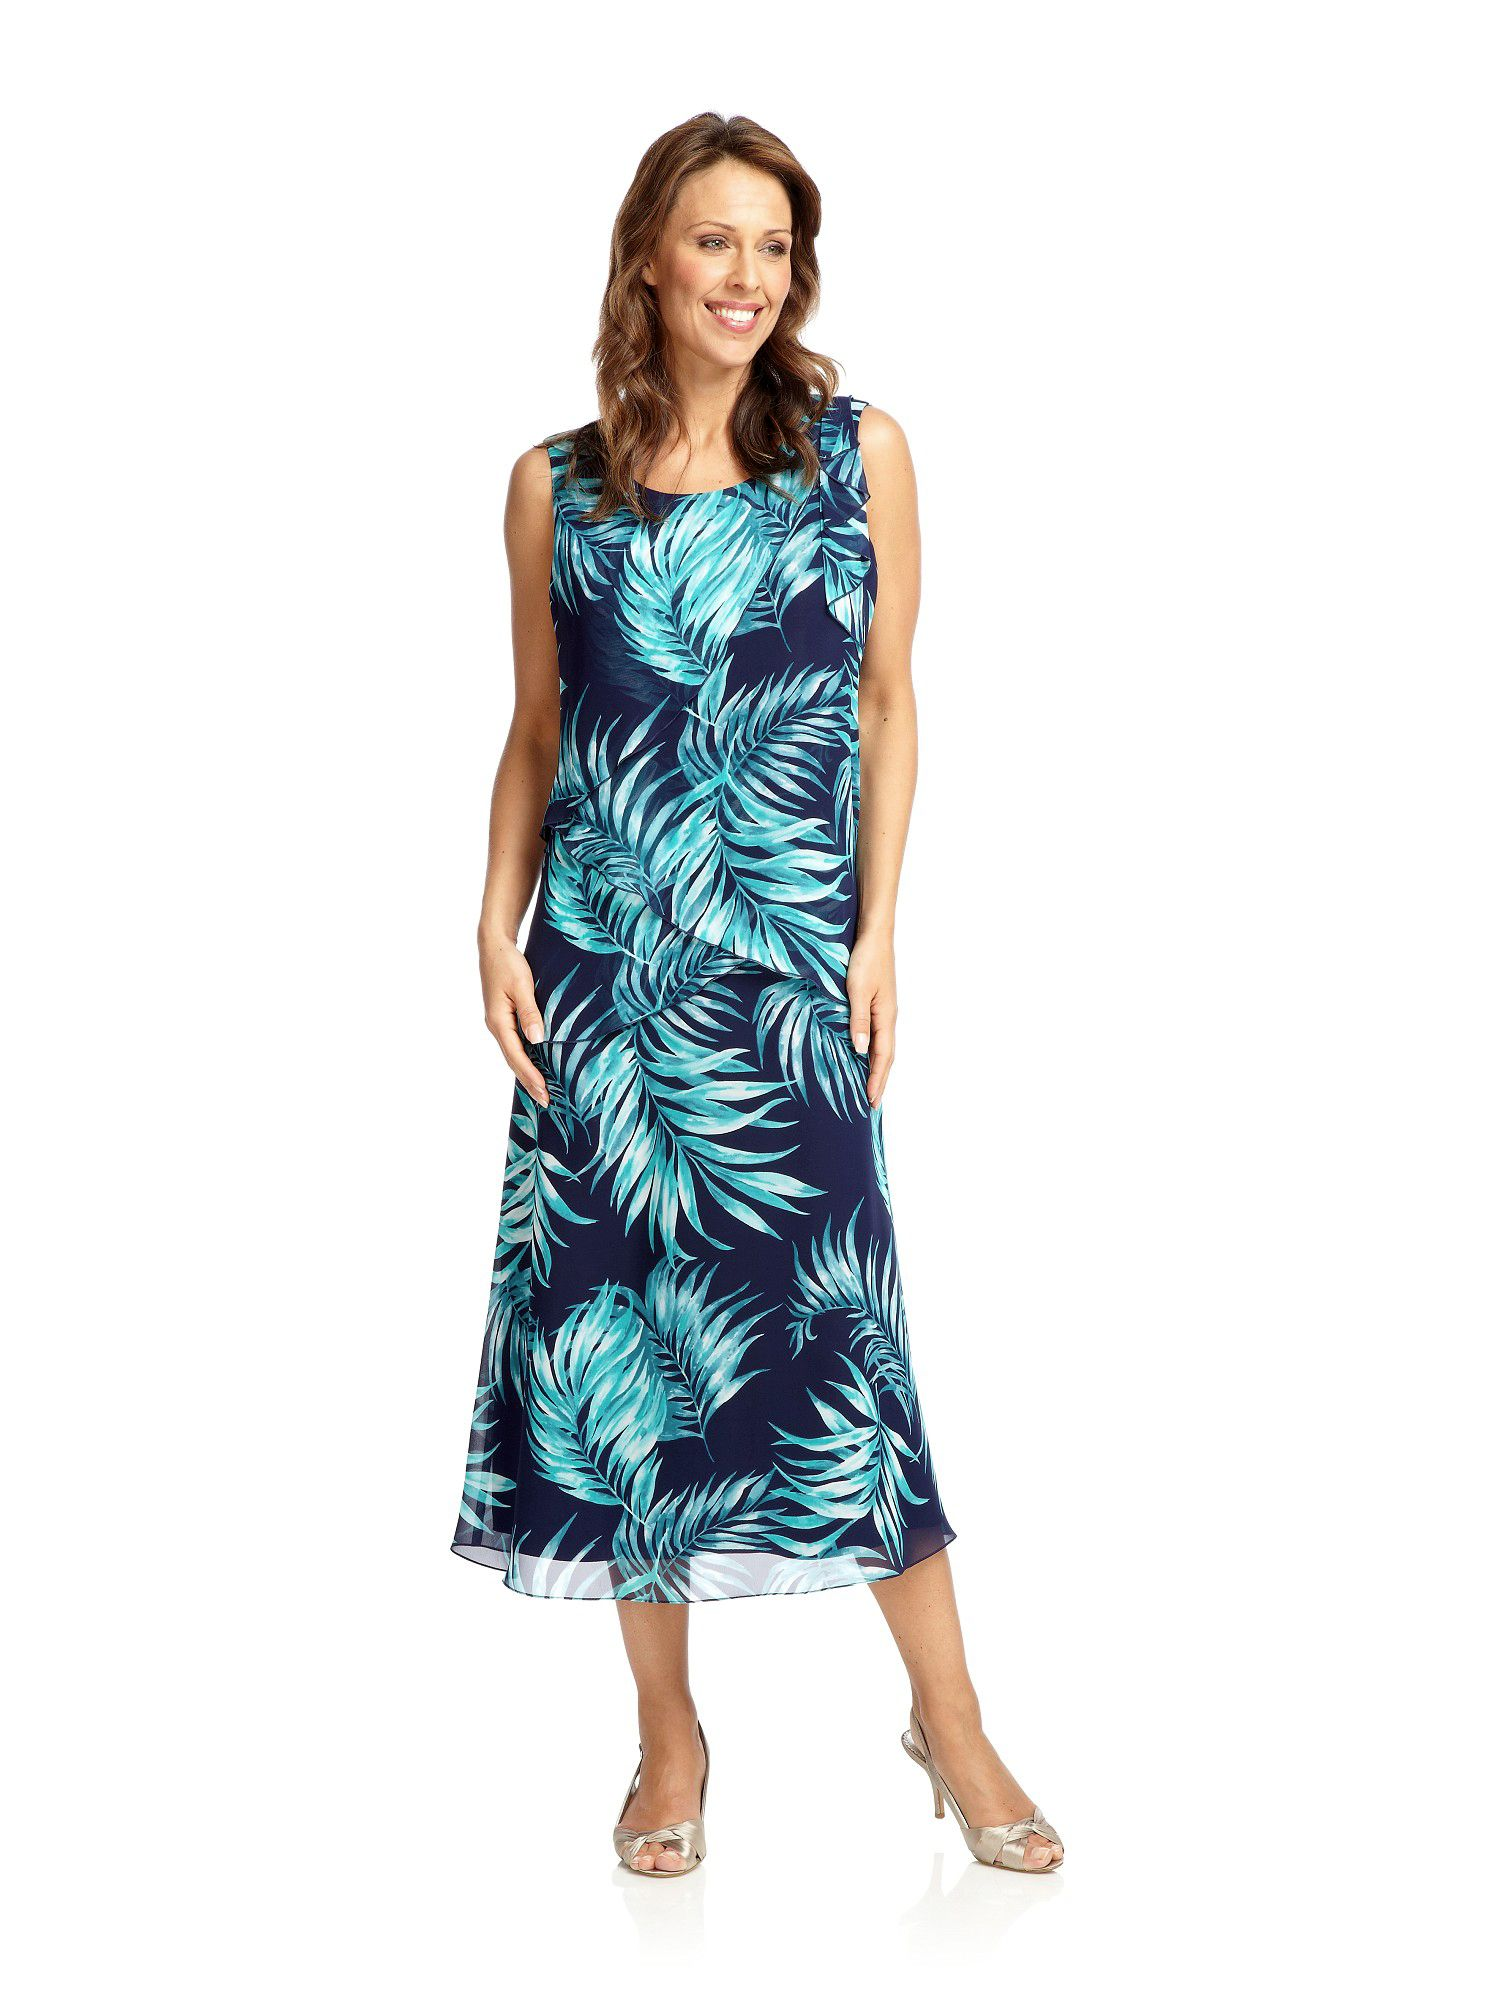 Fern print chiffon dress